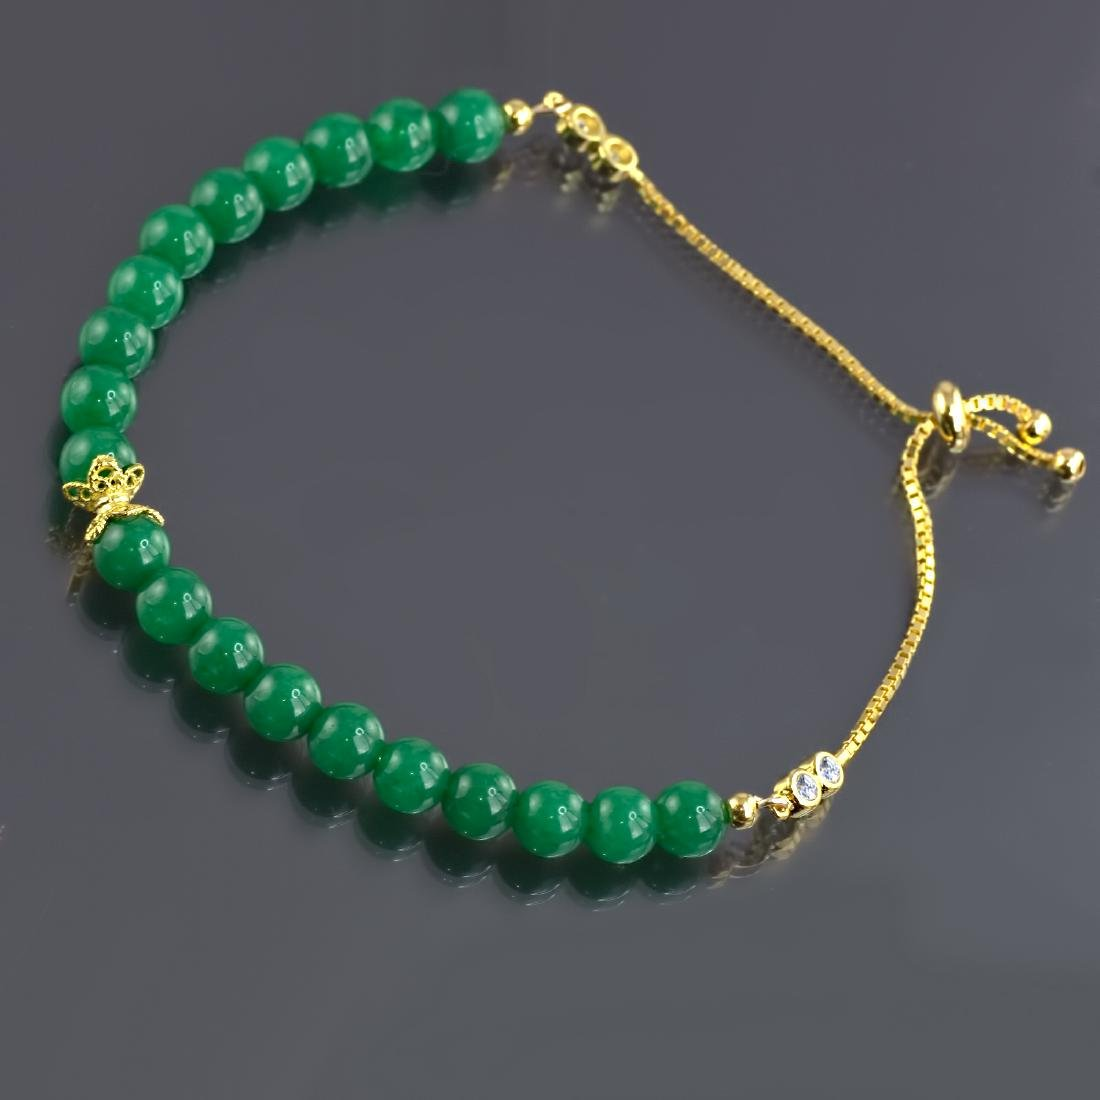 Adjustable Imperial Green Jade Bracelet - 2